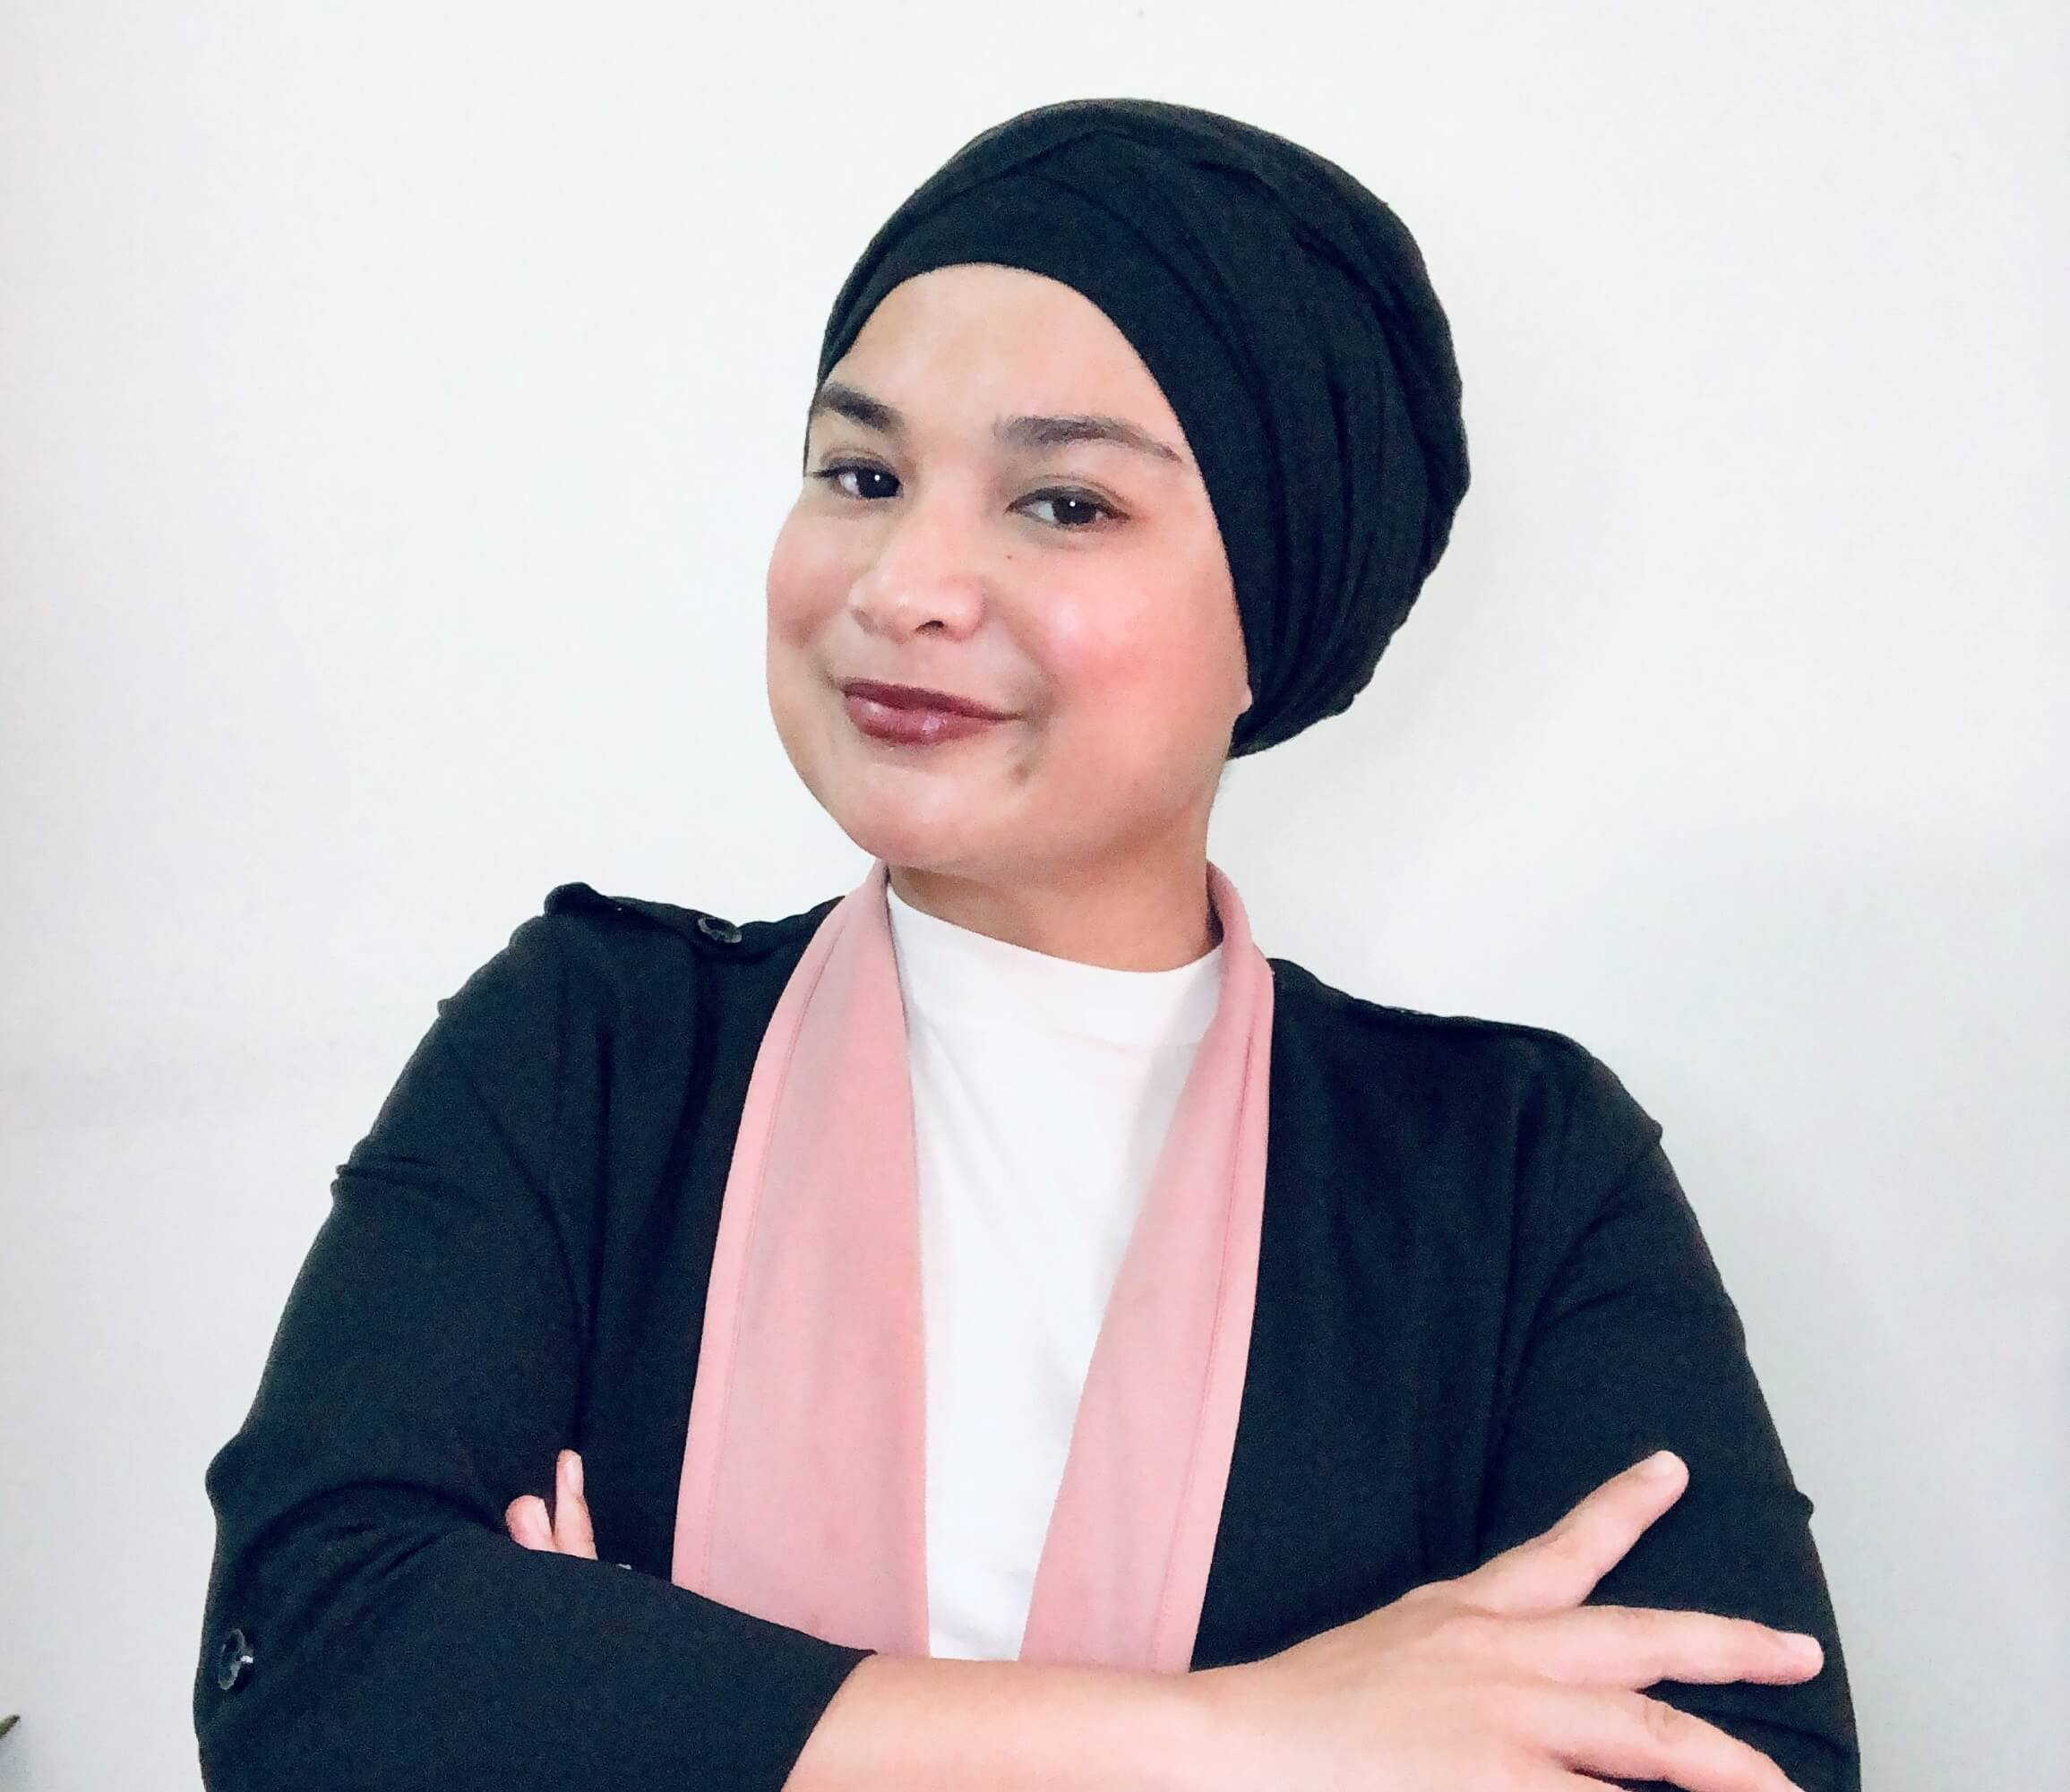 This Chevening Scholar wants Malaysian media to empower women